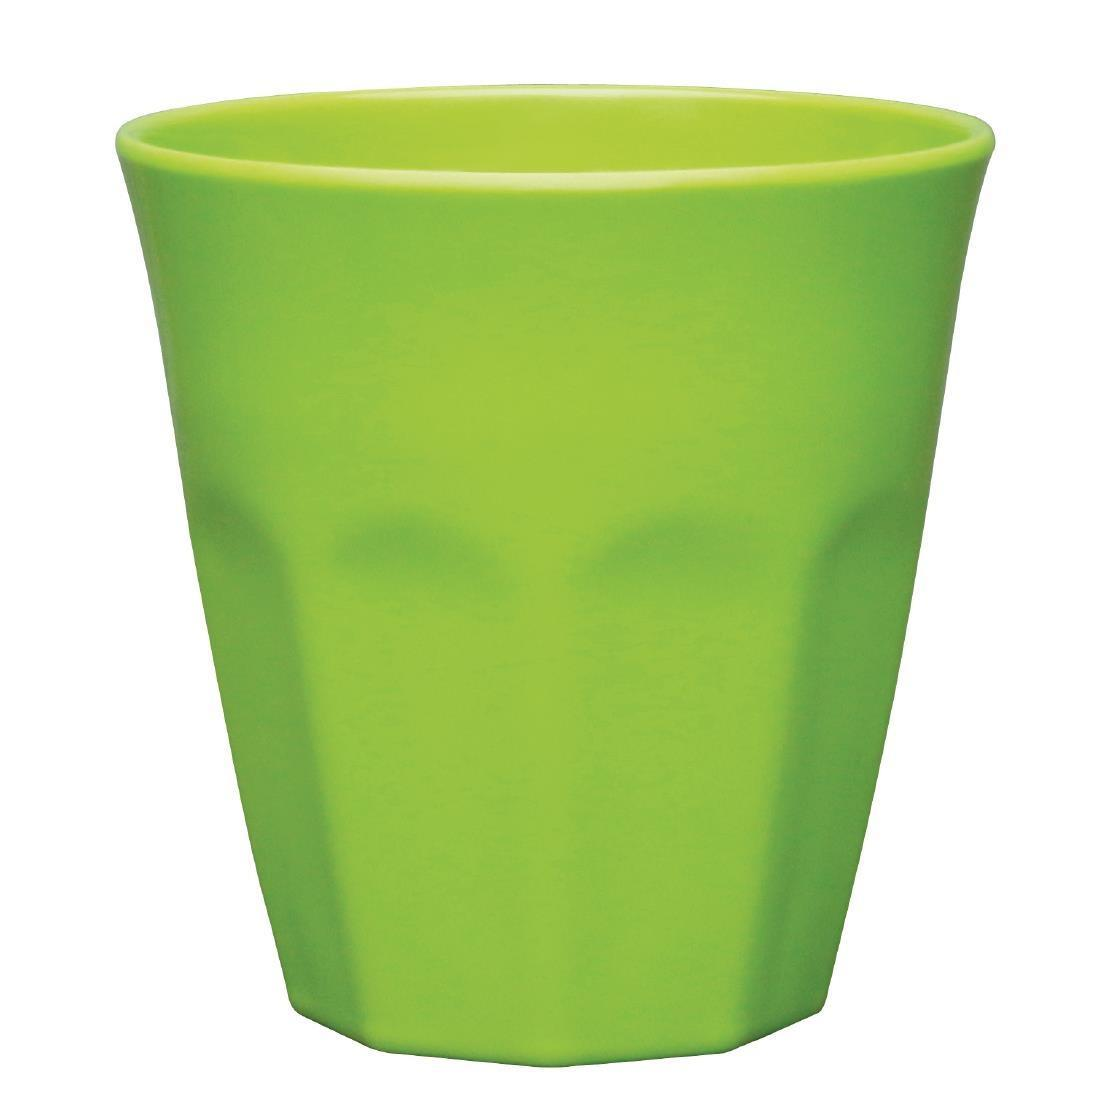 Kristallon Melamine Plastic Tumbler Green 290ml - Case 6 - CR345